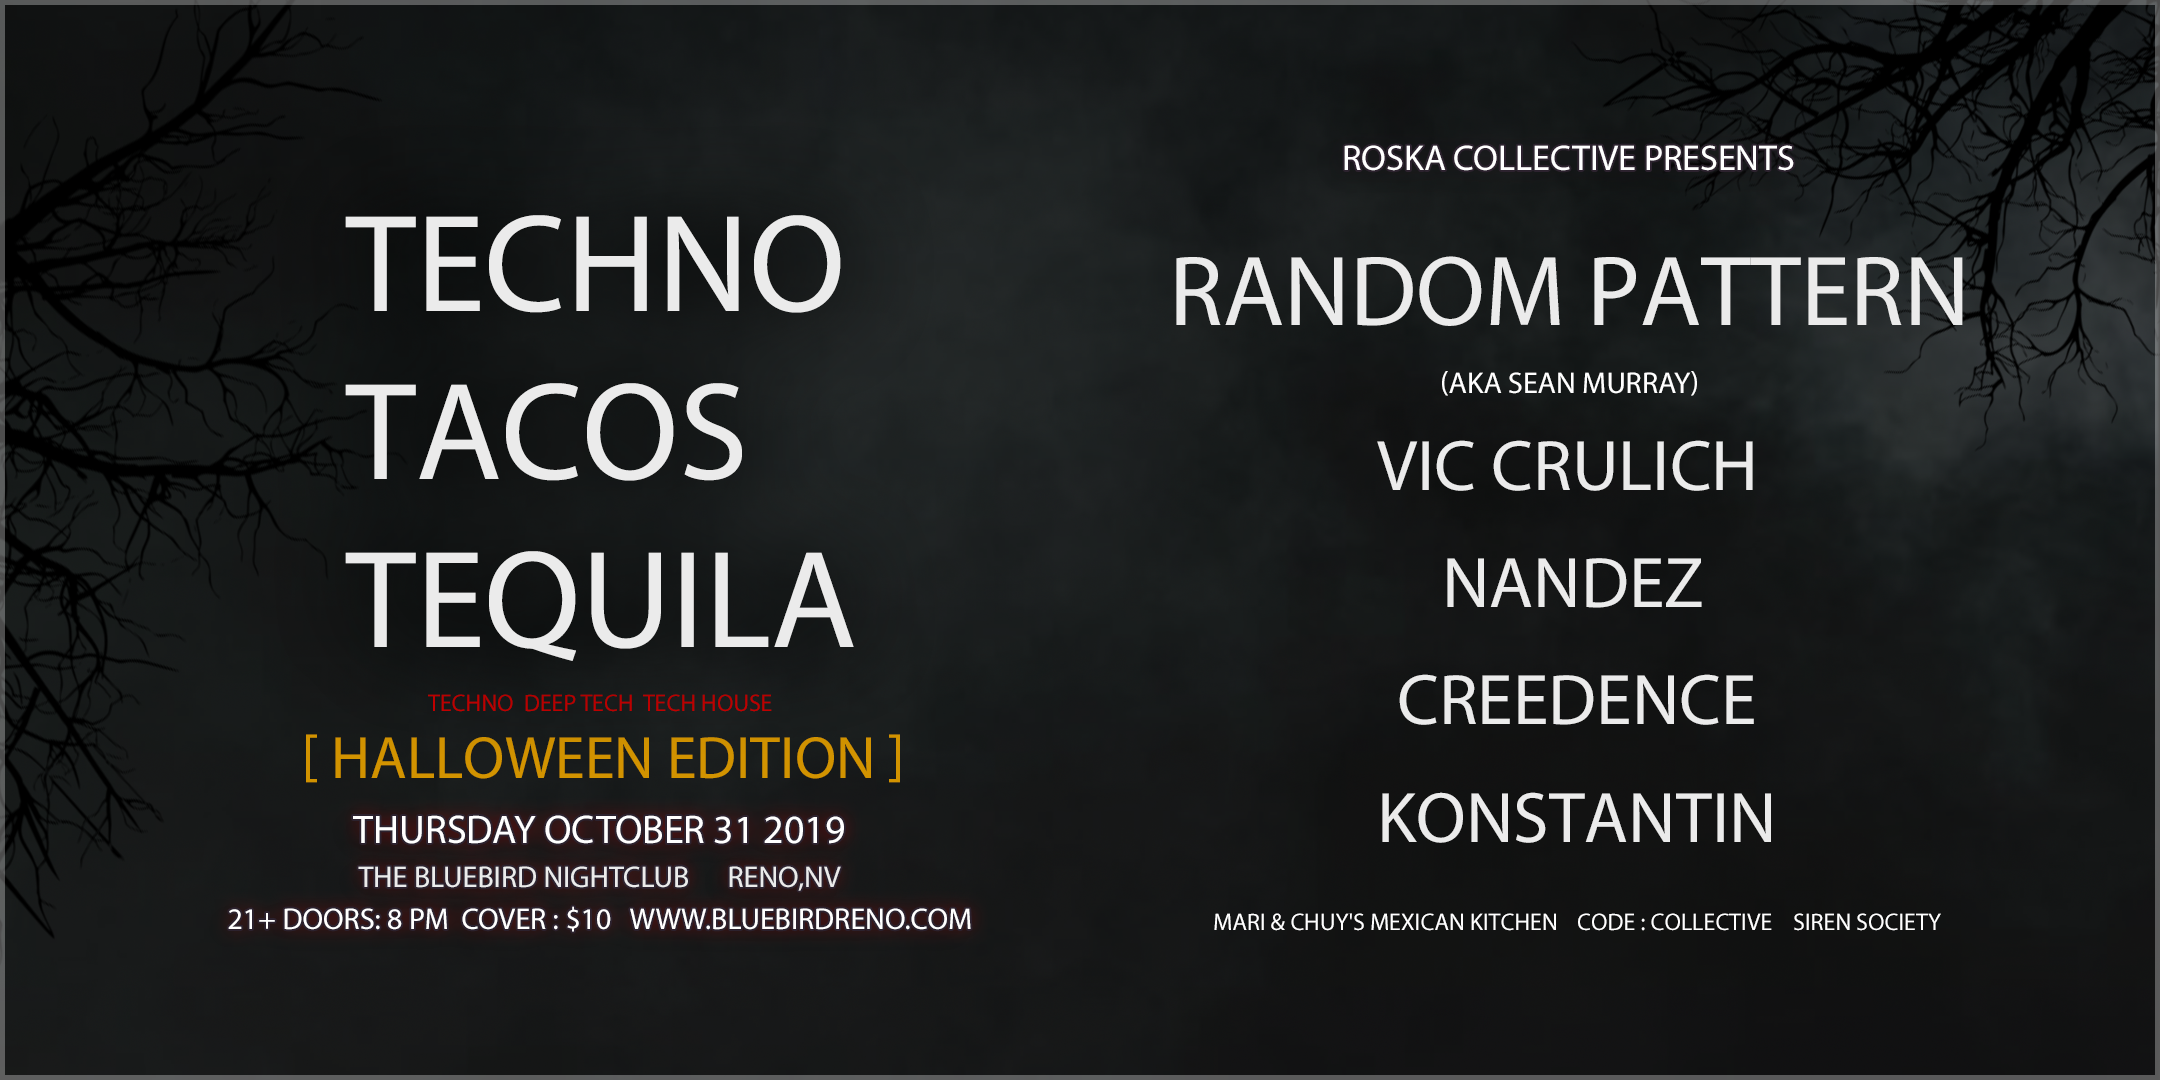 Techno Taco Tequila Halloween Flyer 2 remake 1